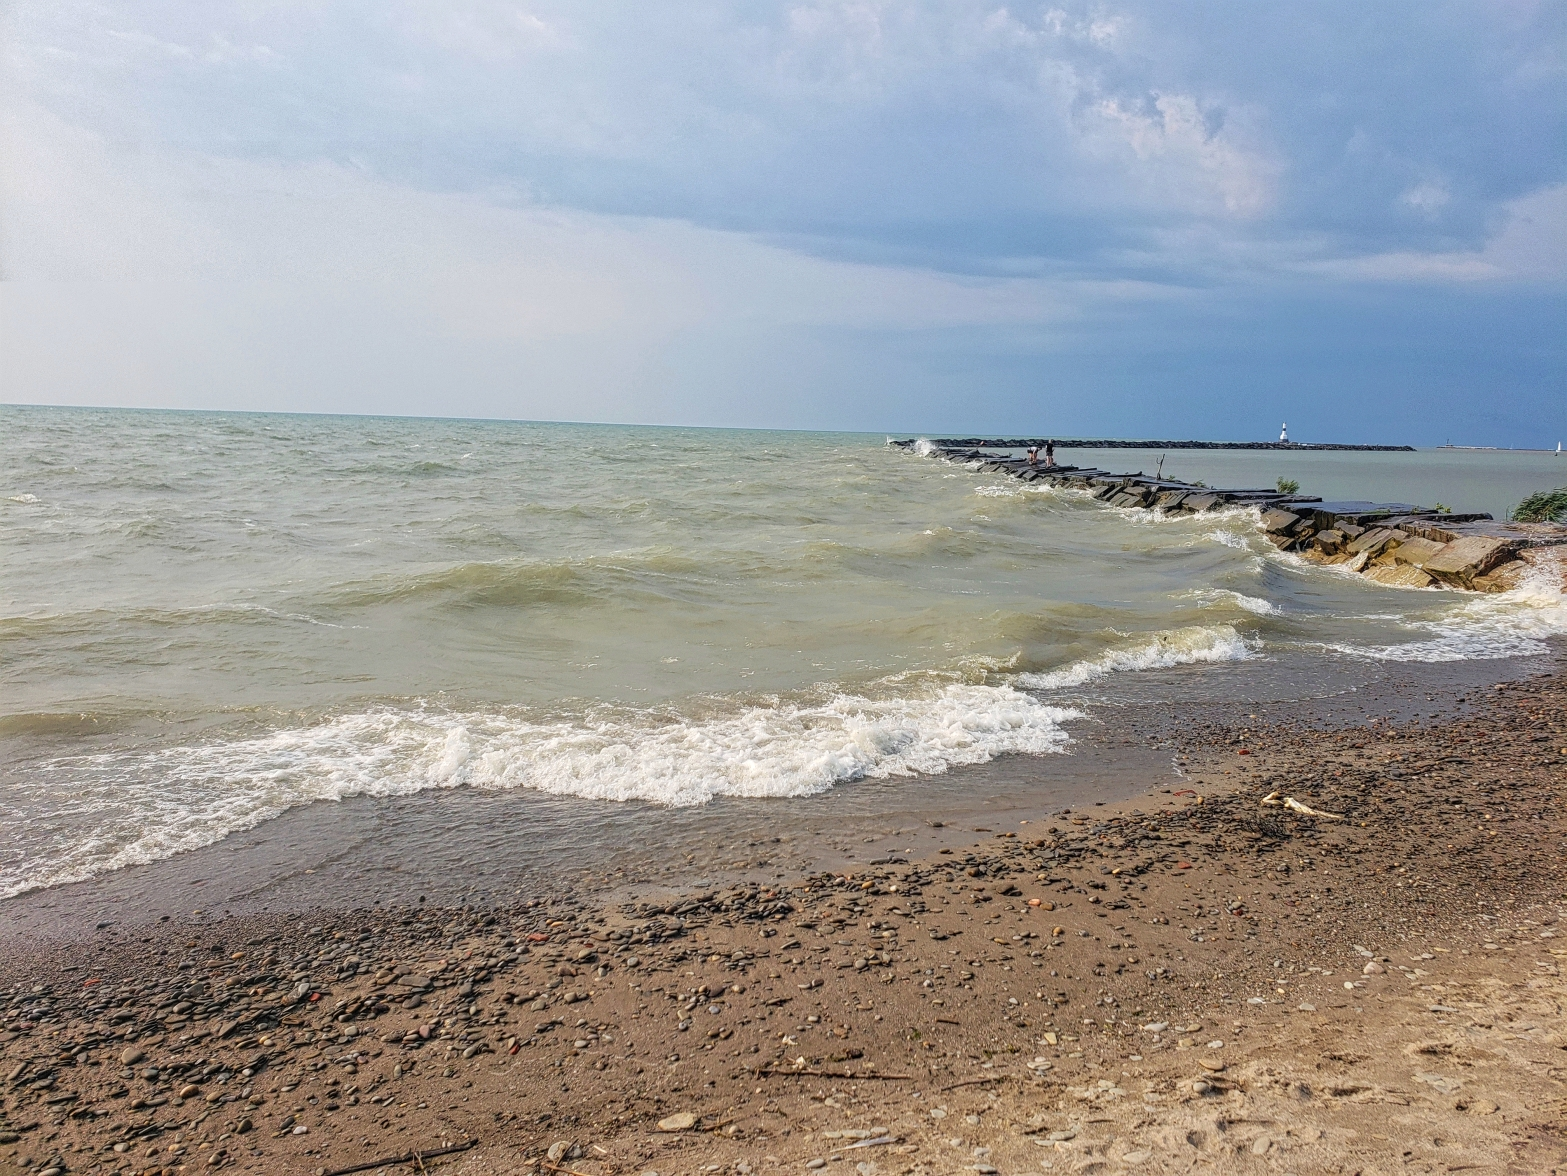 Waves of water crashing onto the beach of Conneaut Township Park